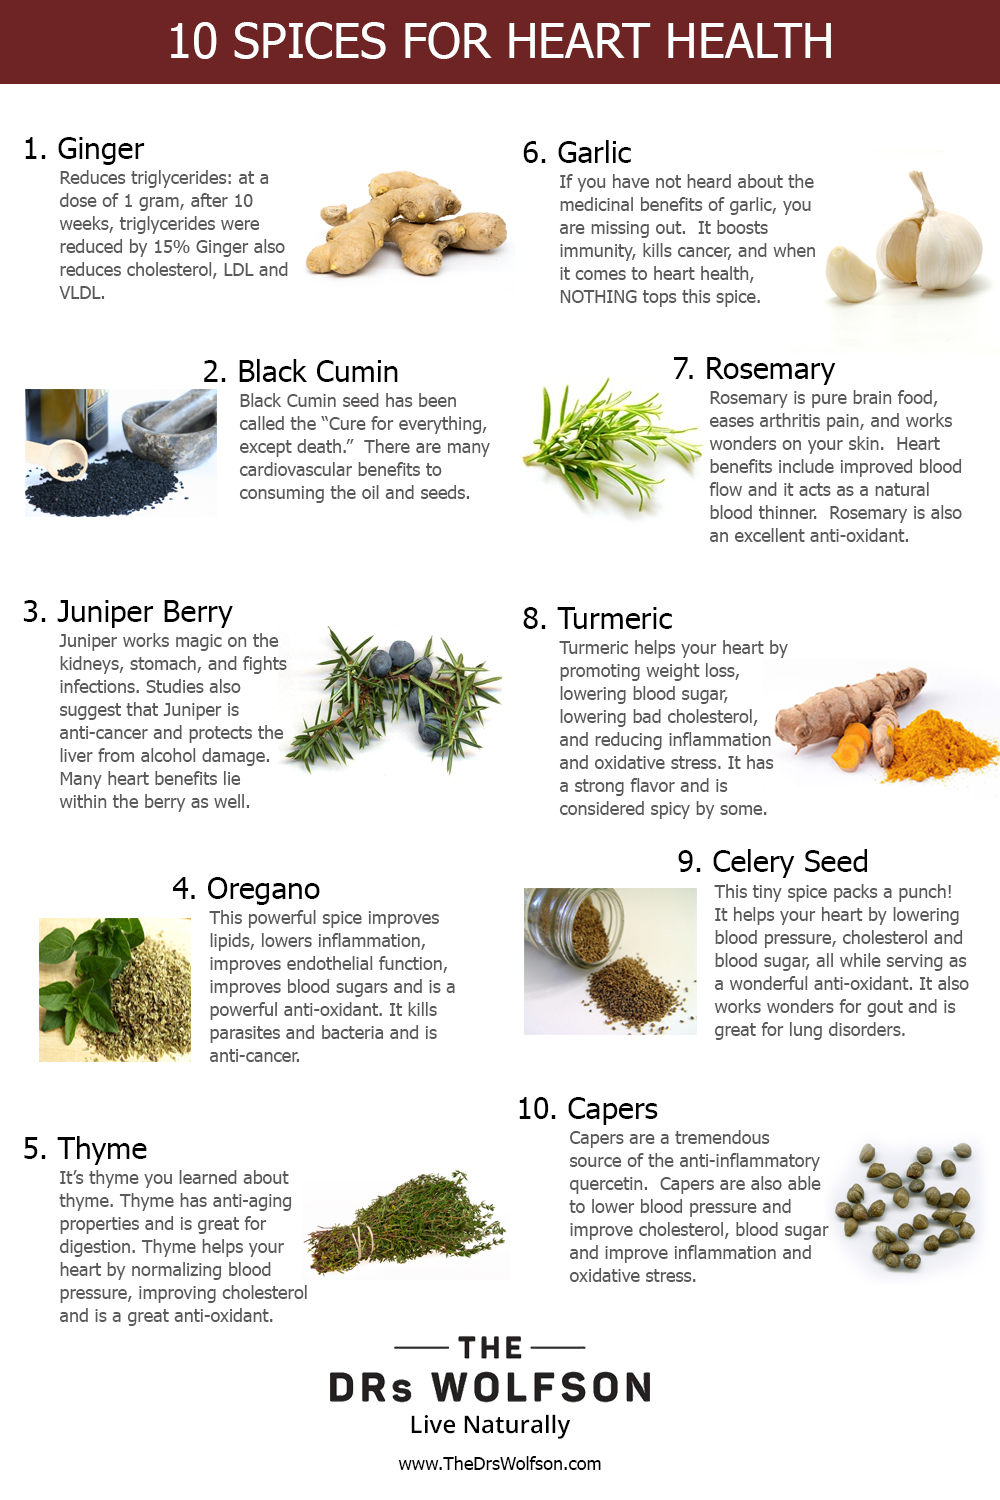 The Drs Wolfson Infographic - 10 Spices For Heart Health